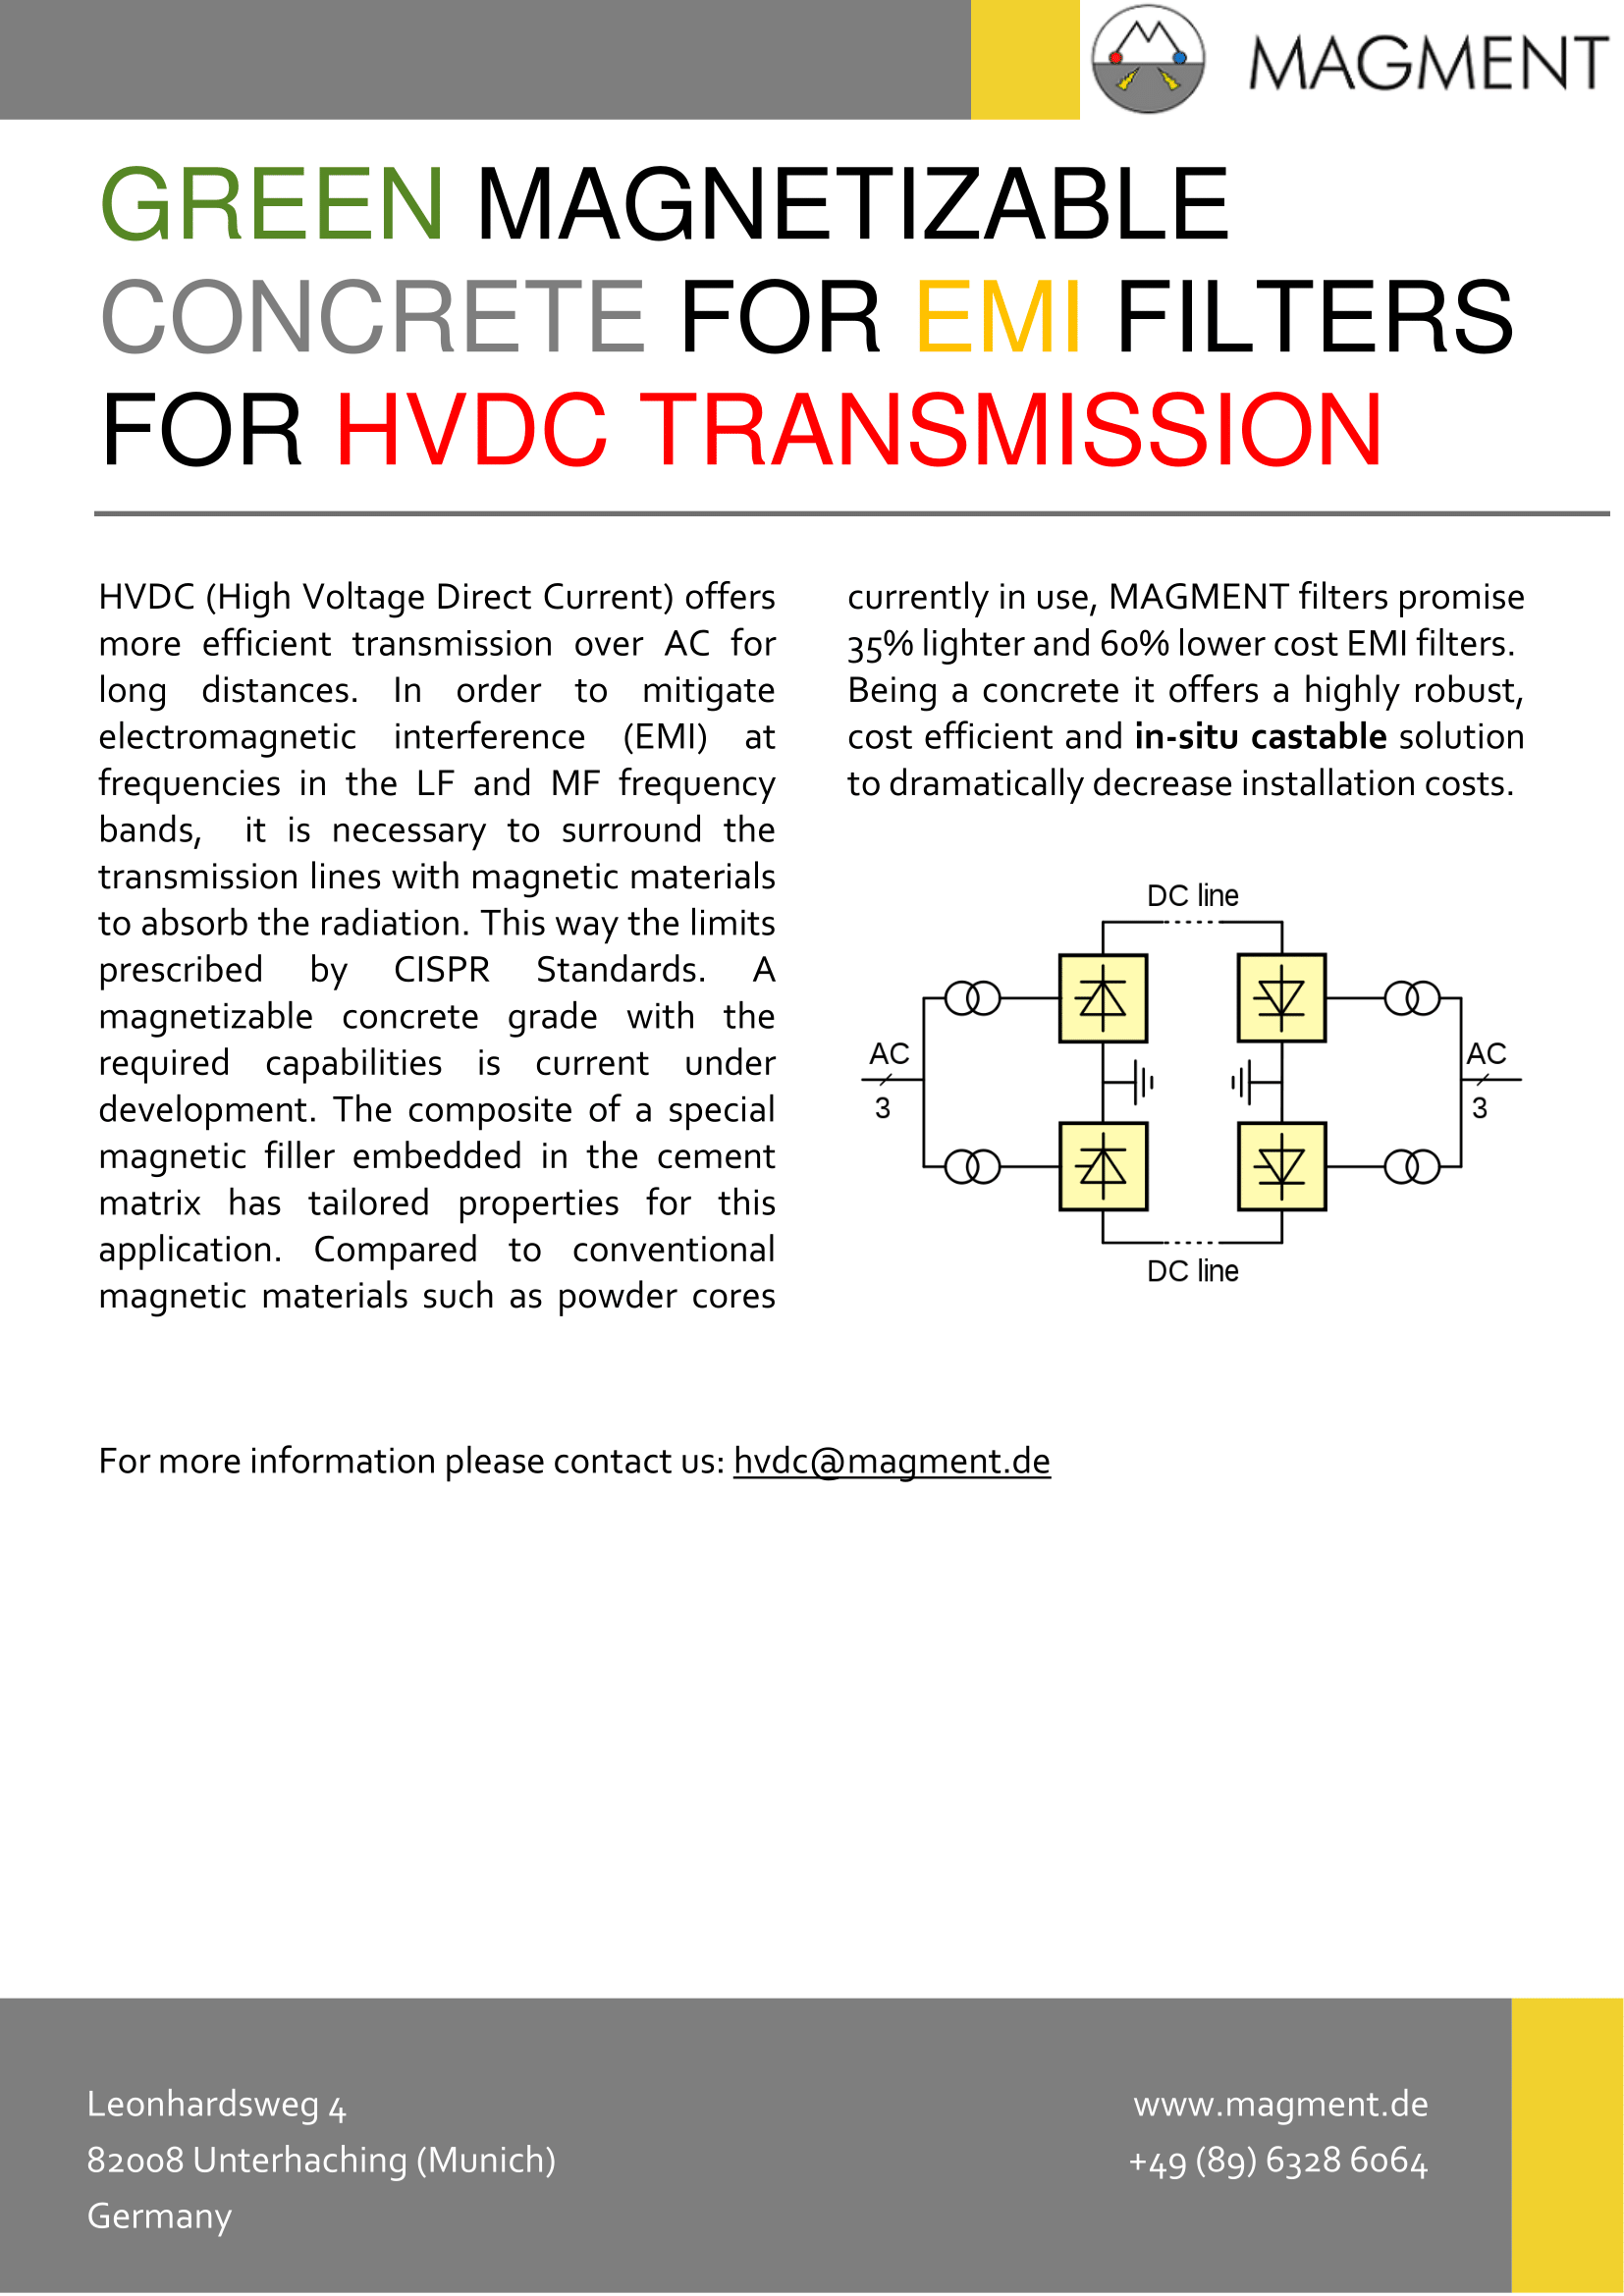 MAGMENT_Leaflet_on_EMC_for_HVDC-1.png